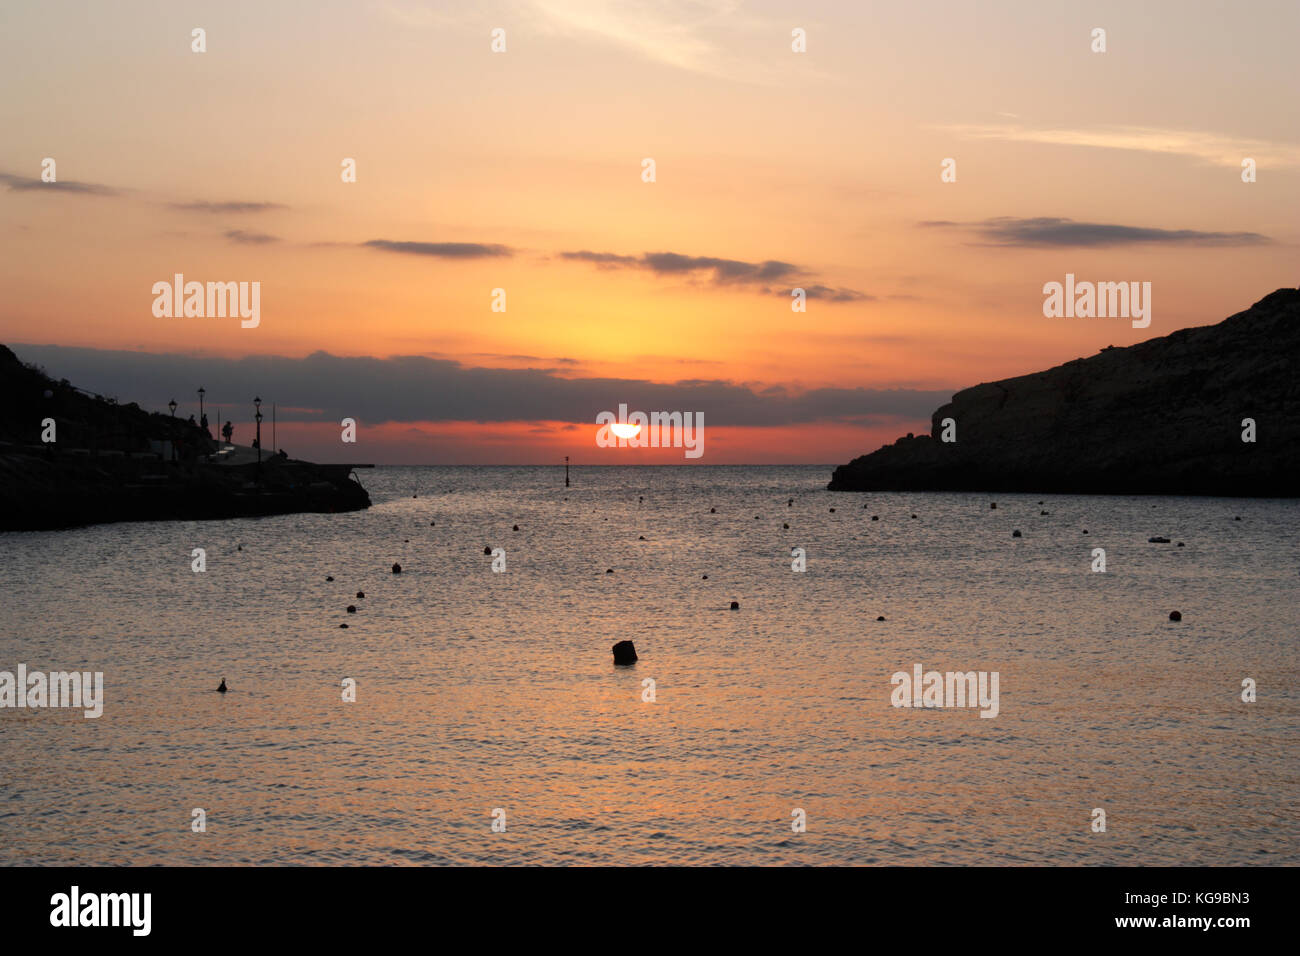 Sunset over the Mediterranean Sea, as seen from the seaside resort of Xlendi in Gozo, Malta - Stock Image